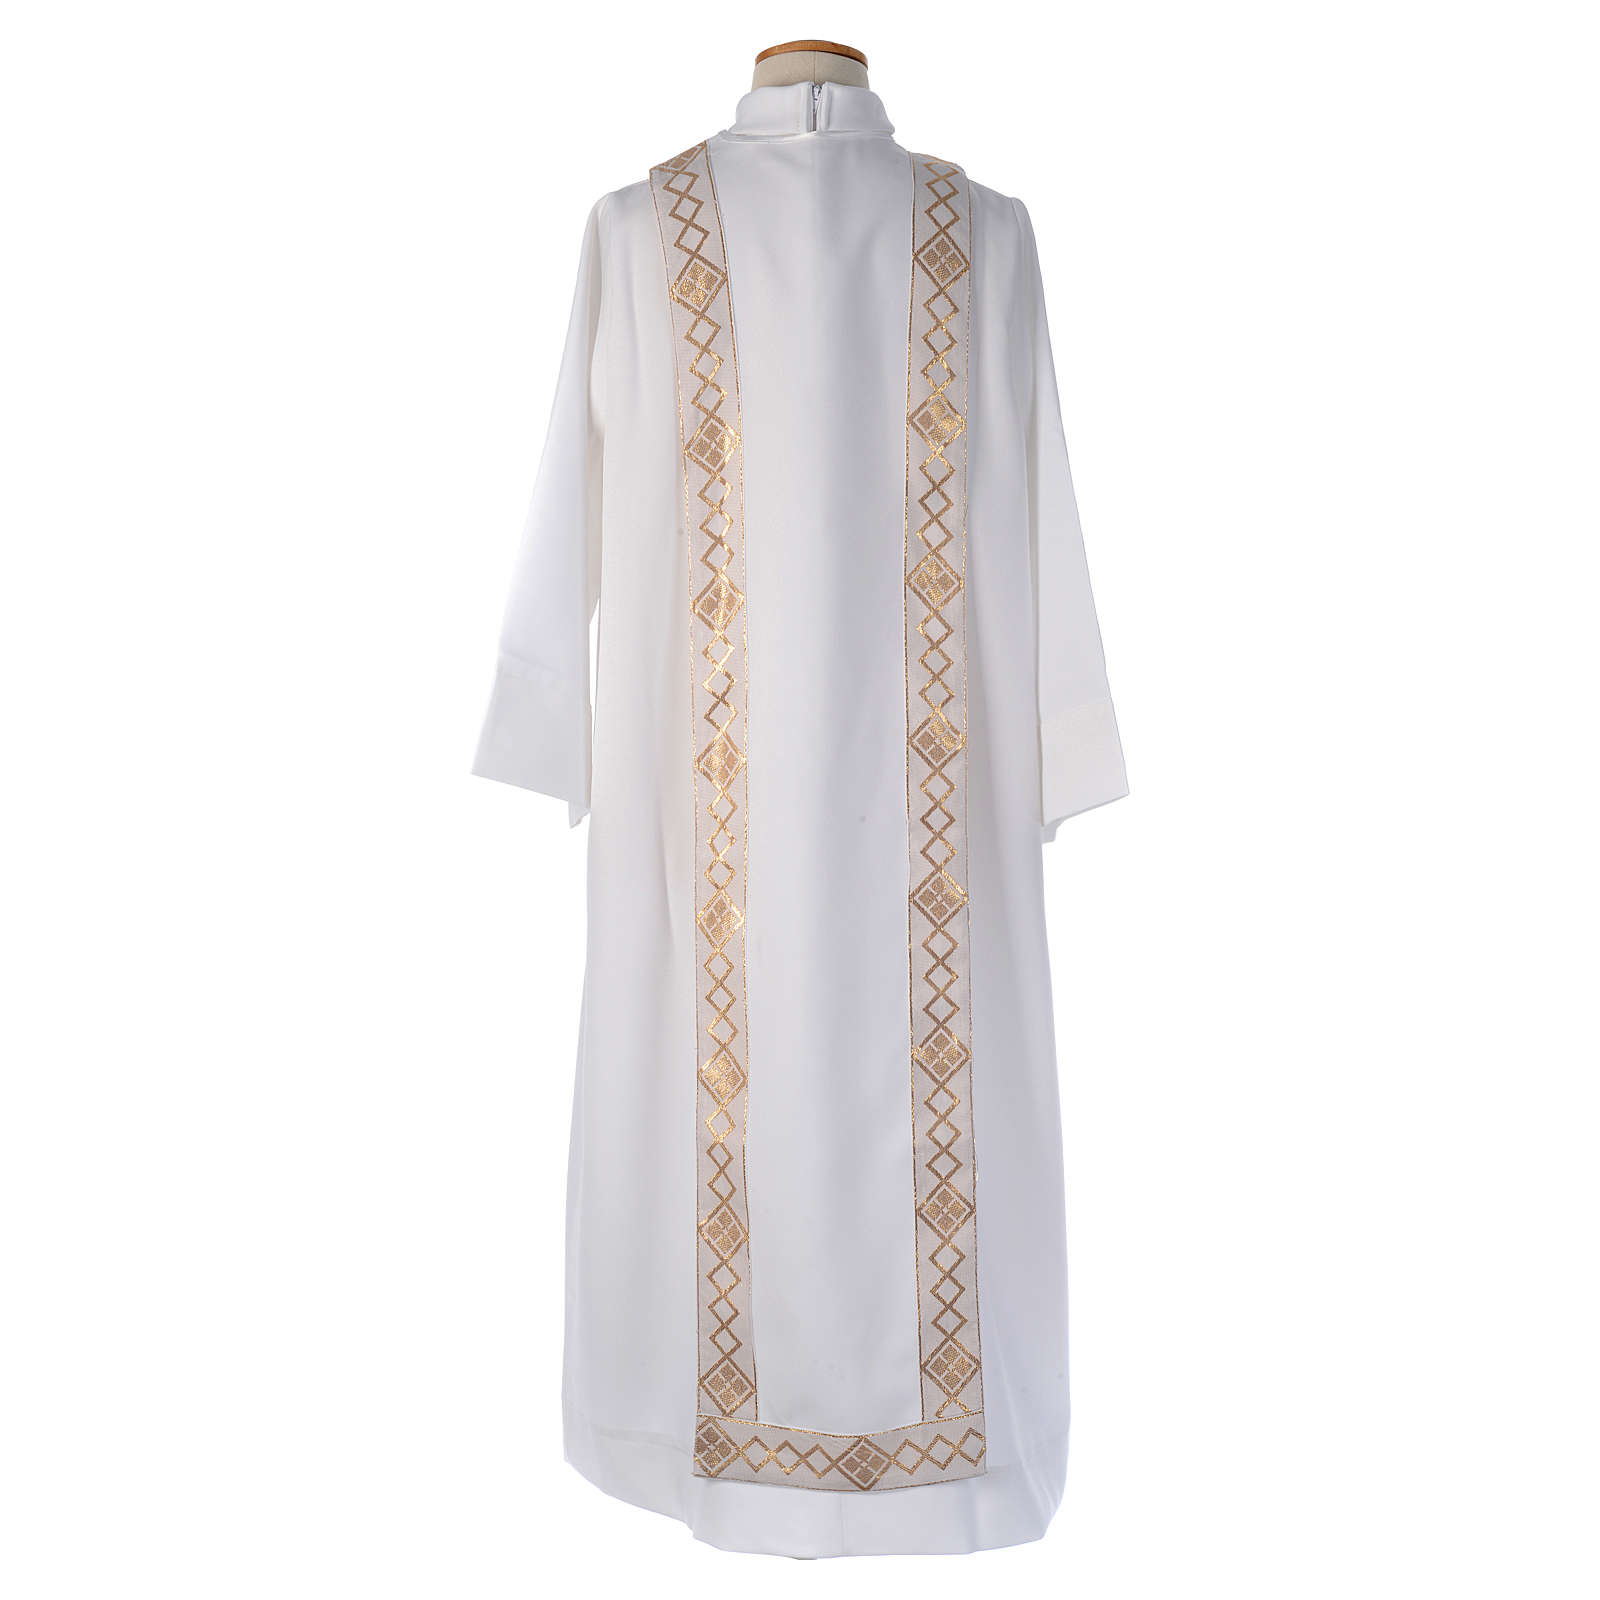 Embroidered Cross Holy Communion Alb 4